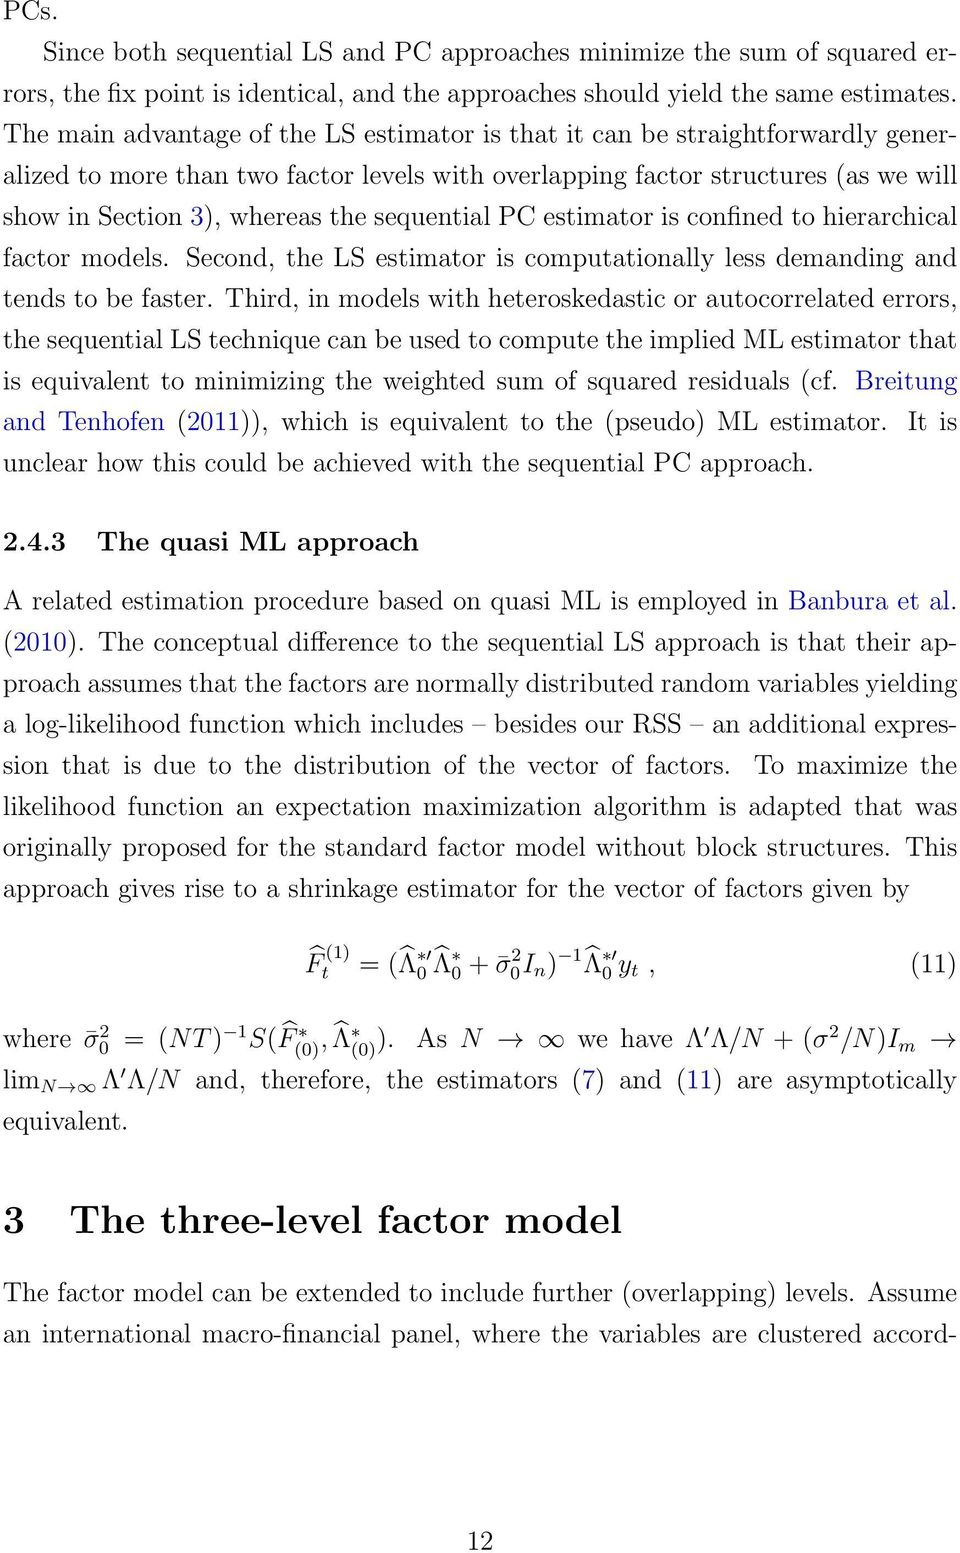 sequential PC estimator is confined to hierarchical factor models. Second, the LS estimator is computationally less demanding and tends to be faster.